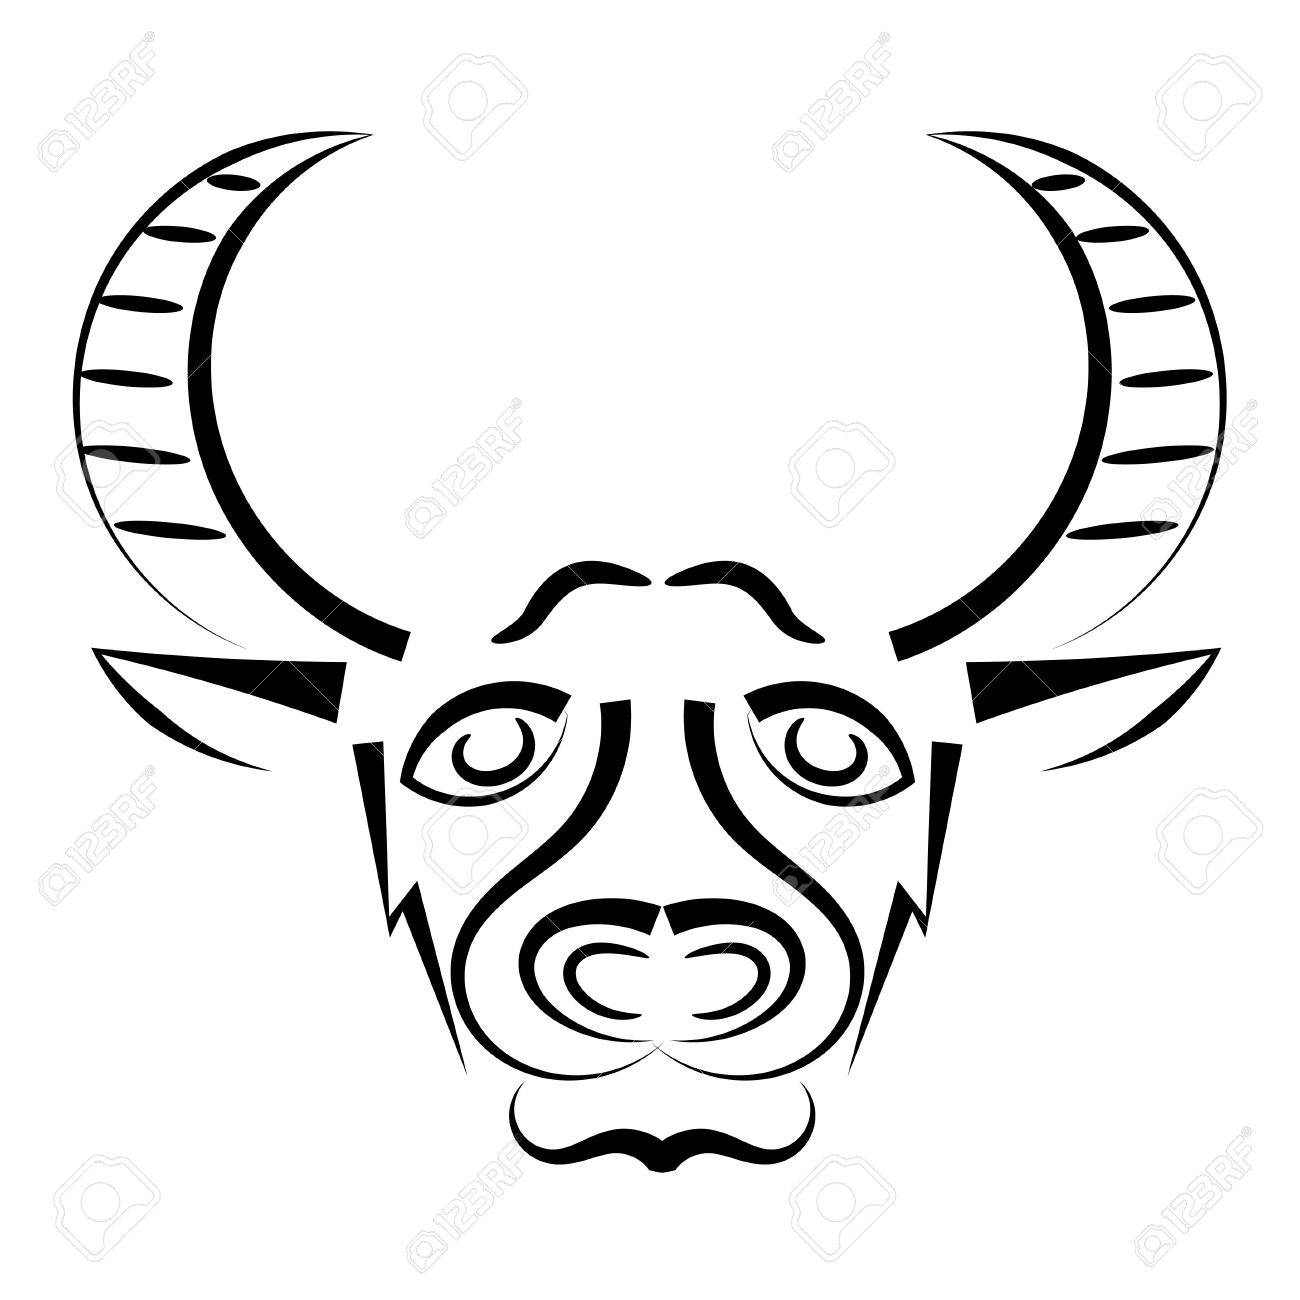 Abstract silhouette of a bull Stock Vector - 15930957